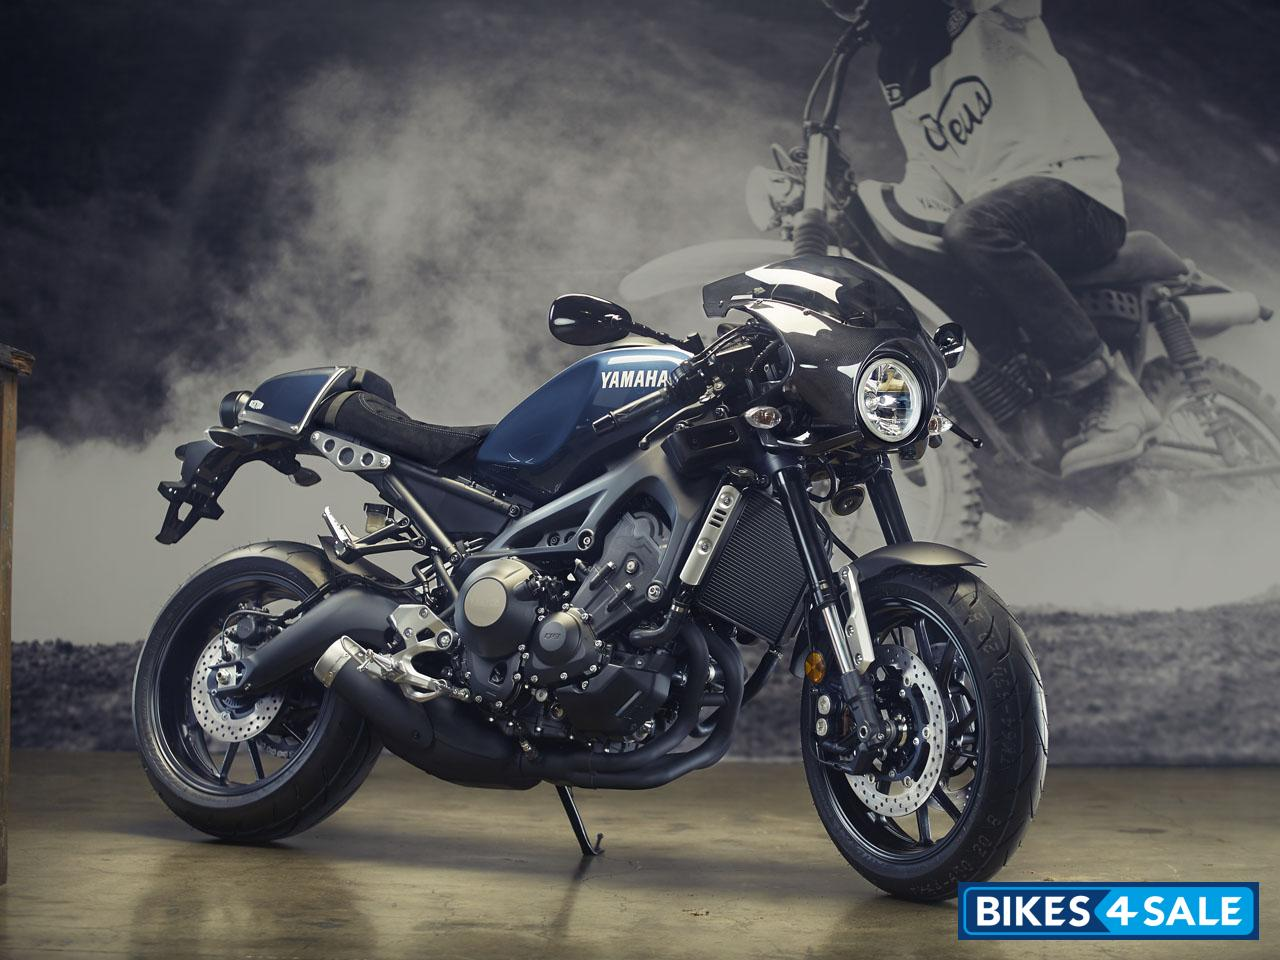 Yamaha XSR 900 Motorcycle Picture Gallery